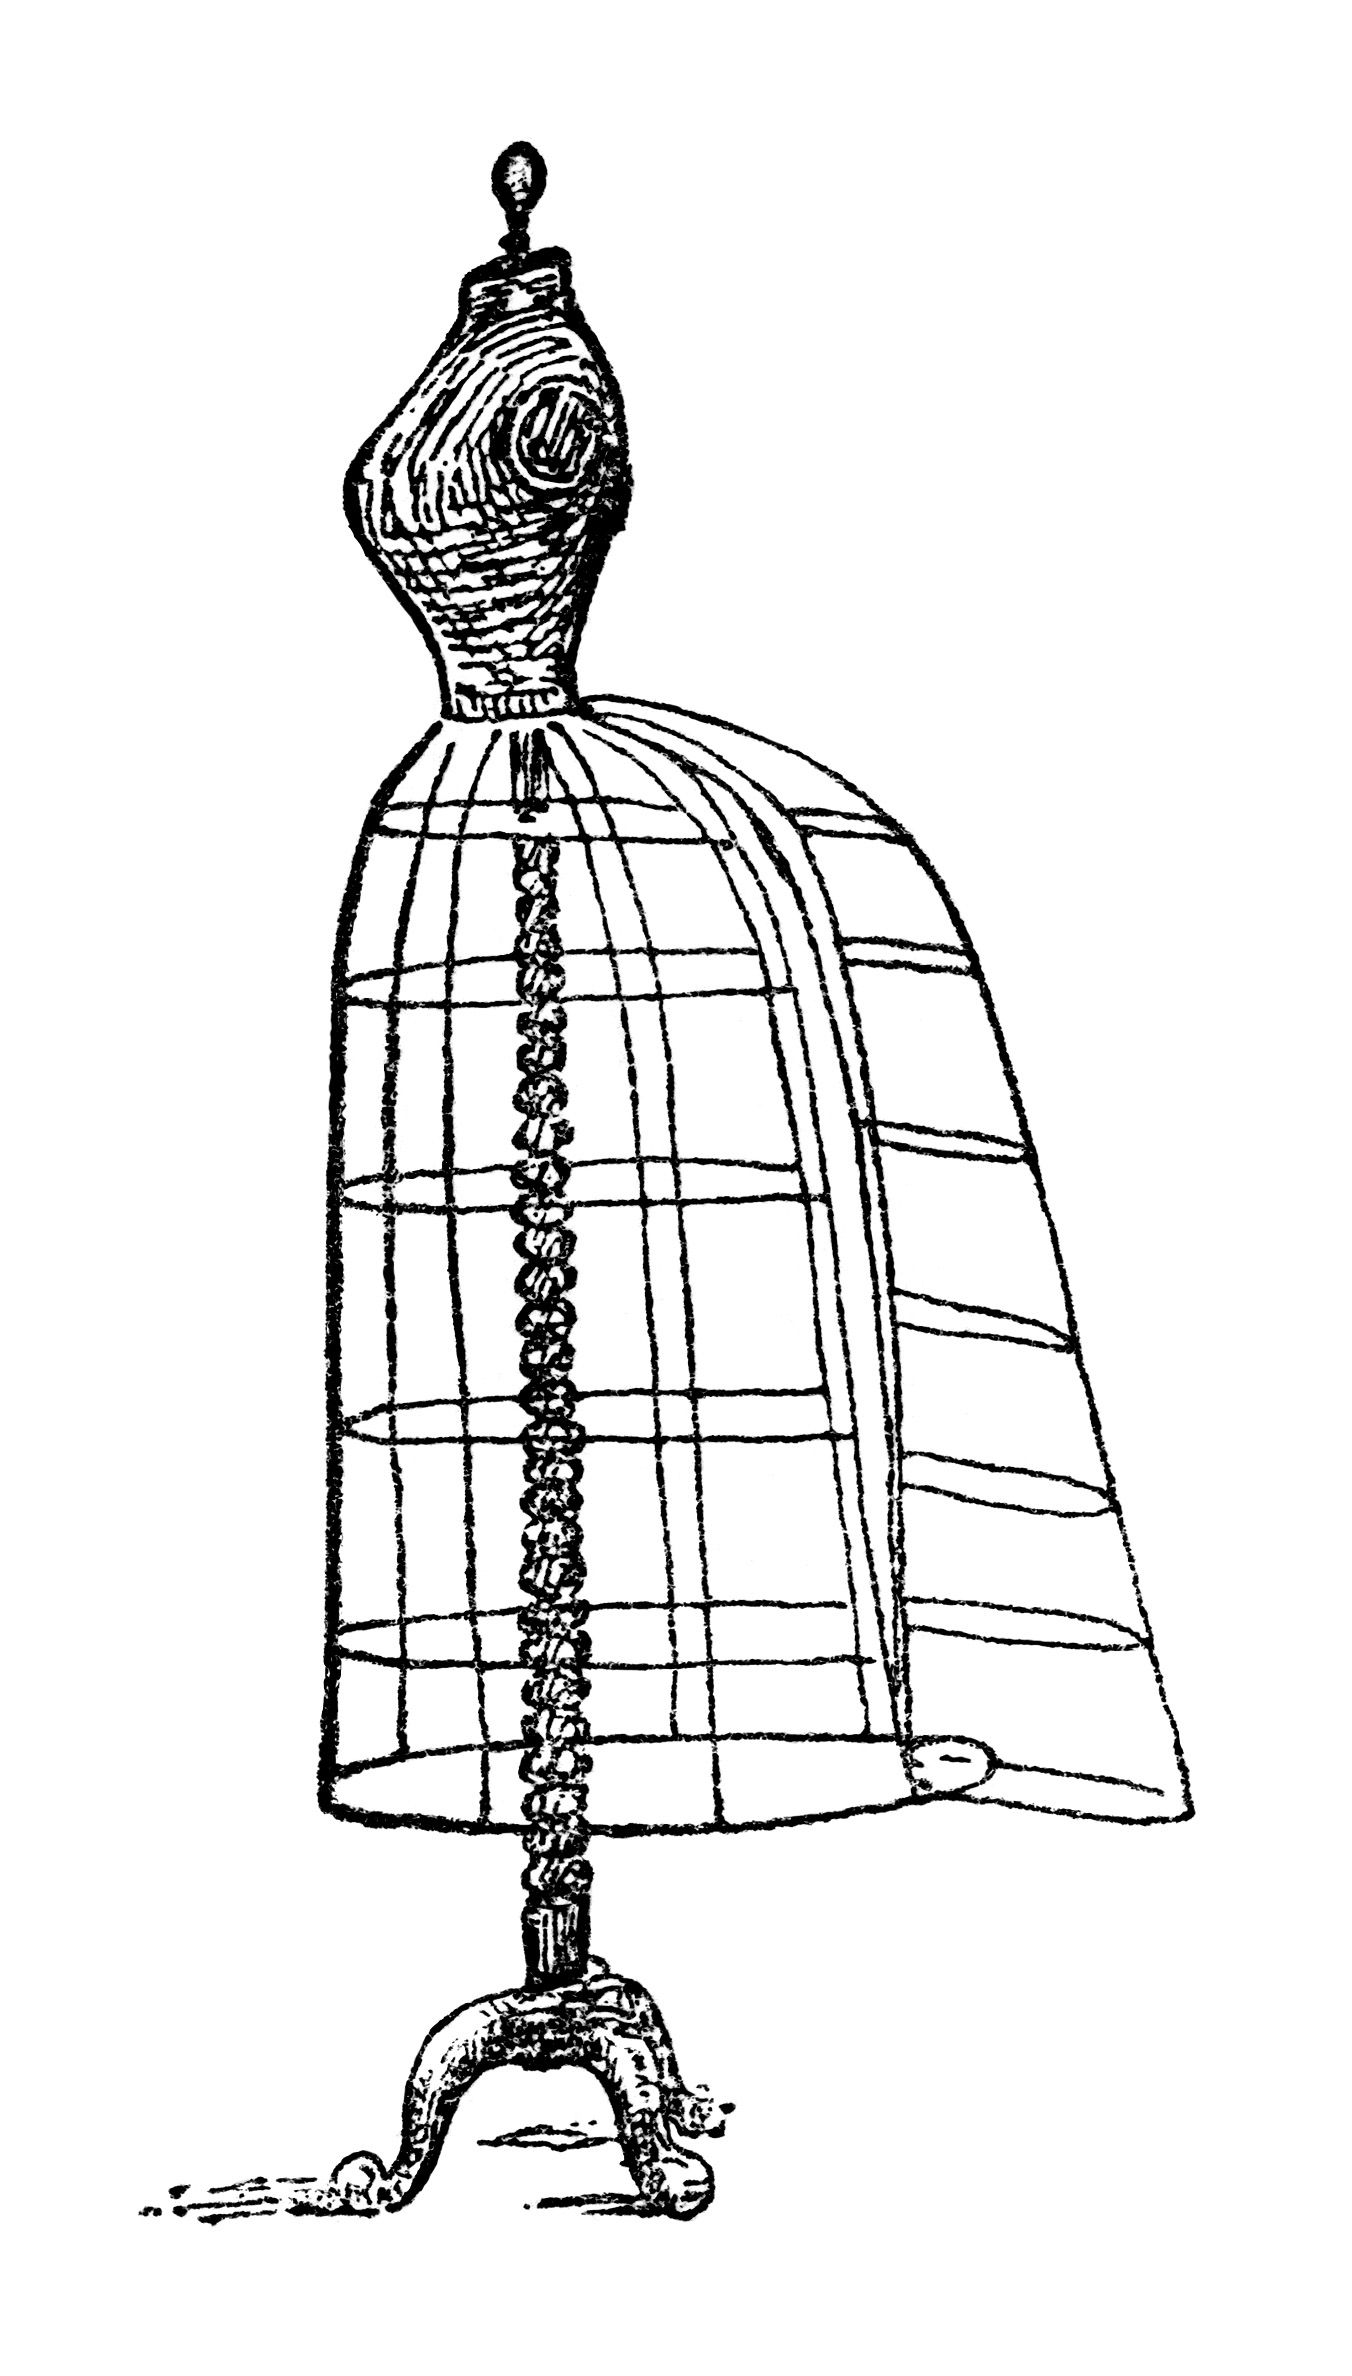 sewing machine clip art black and white sewing clip art black and white clipart wire dress form illustration [ 1352 x 2376 Pixel ]